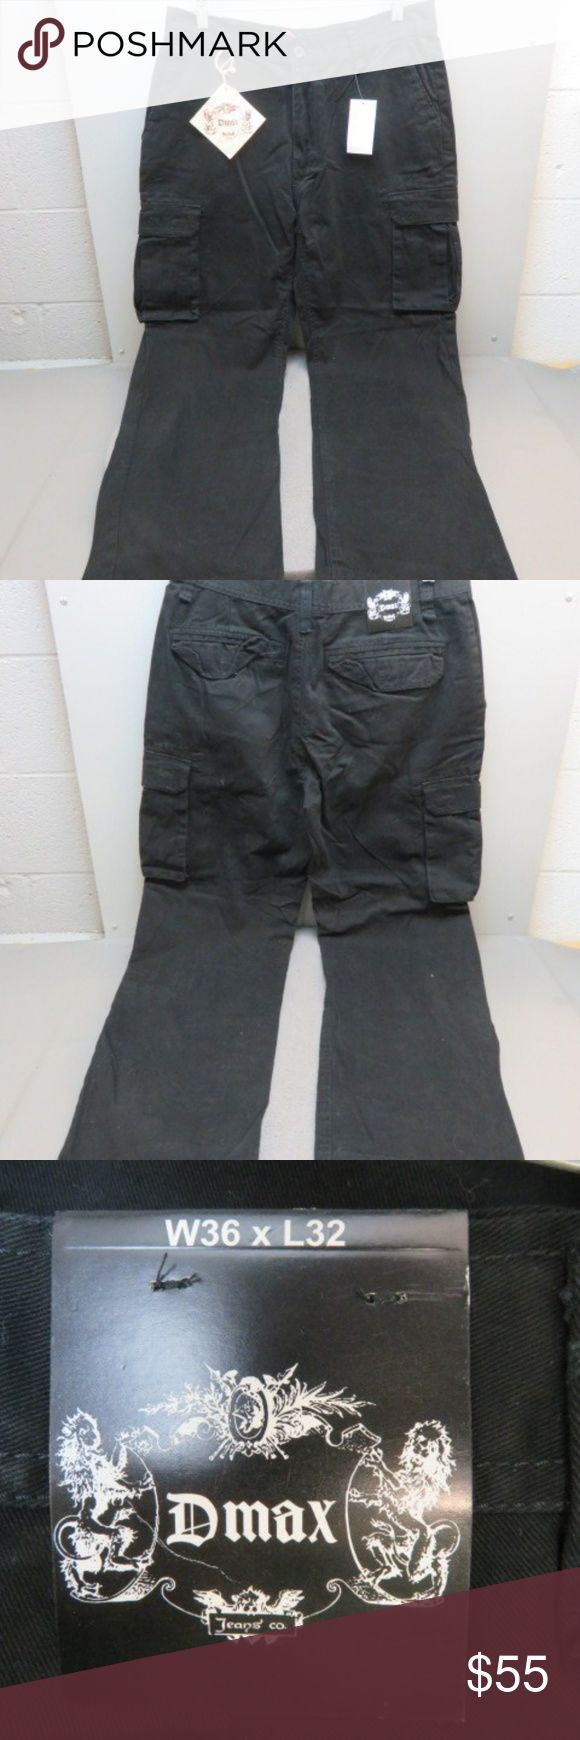 Men's Black Jeans from Dmax Jeans Co. 36W x 32L New With Tags! Nice Pockets!...